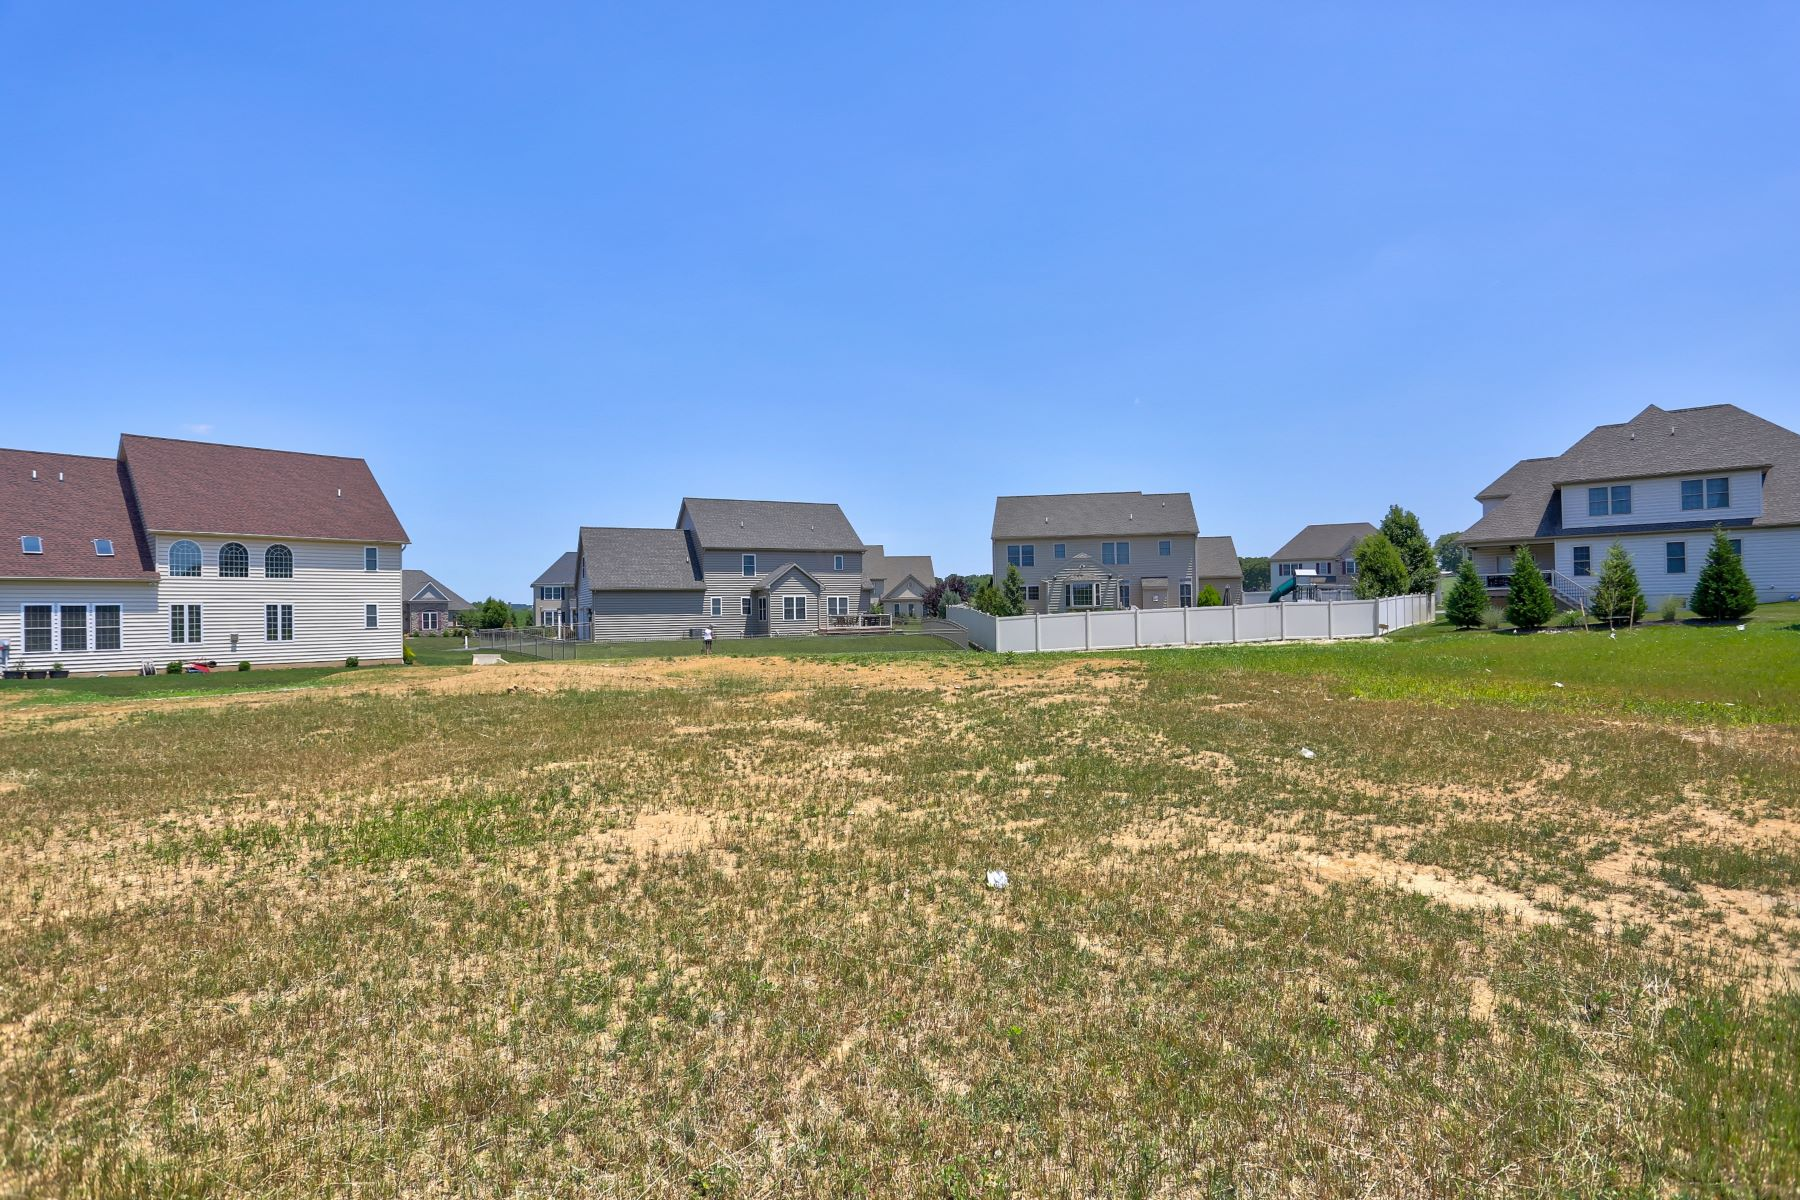 Additional photo for property listing at Lot 41 Alexa Drive Lot 41 Alexa Drive Lititz, Pennsylvania 17543 United States